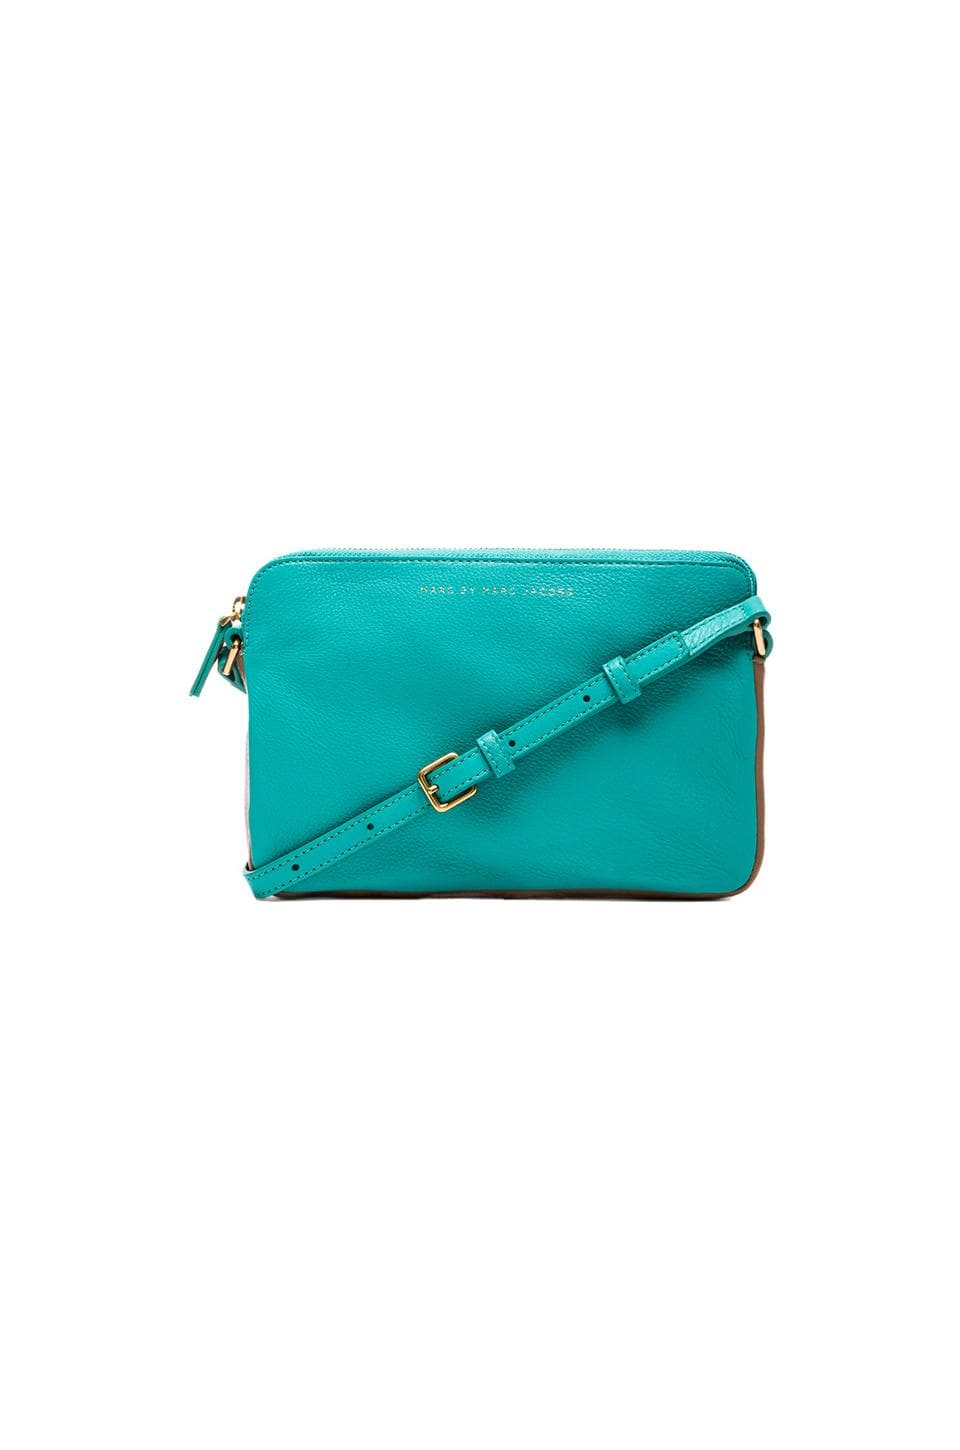 Marc by Marc Jacobs Sophisticato Dani Crossbody in Aqua Lagoon Multi